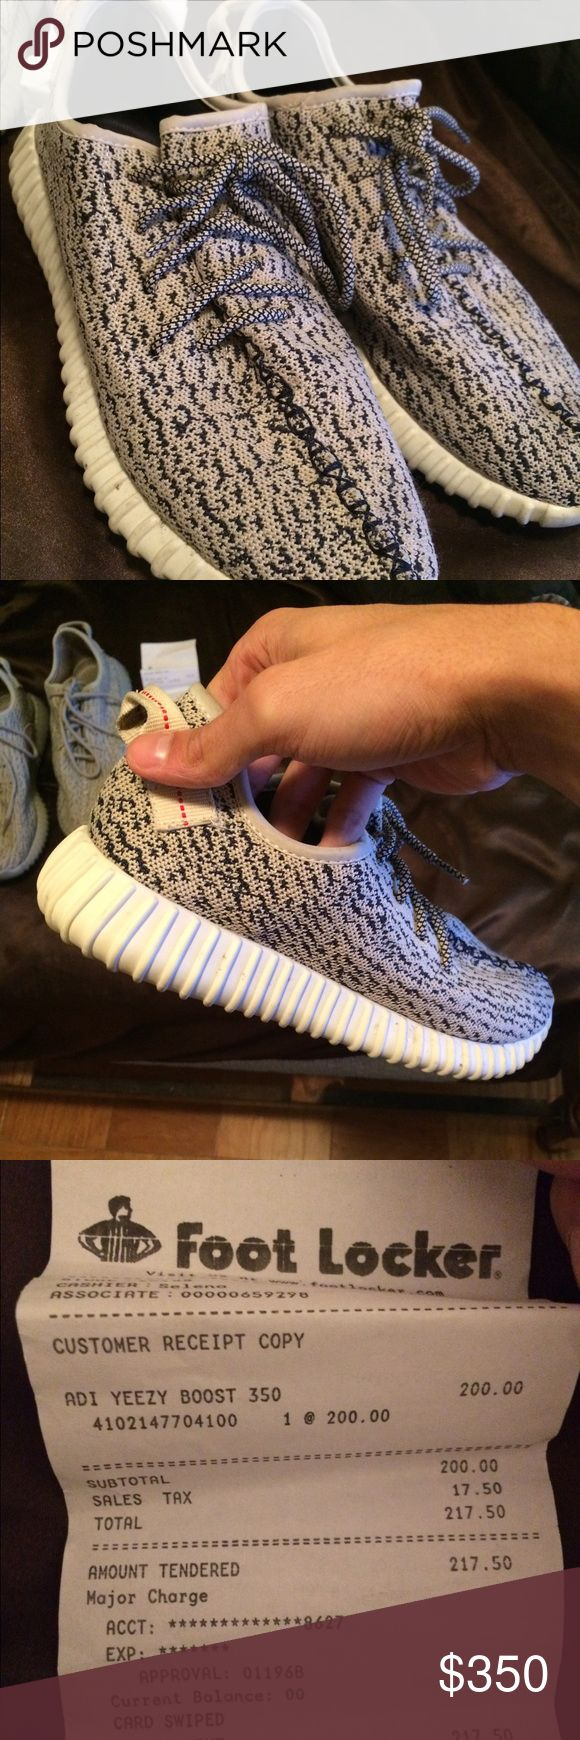 Yeezy 350 Boosts shoes These are REAL!!! (Serious inquires ONLY) i bought these retail when they first came out, clearly from the Ebay picture i posted how much they are going right now!! Willing to negotiate if its right price!! Lmk ASAP Adidas Shoes